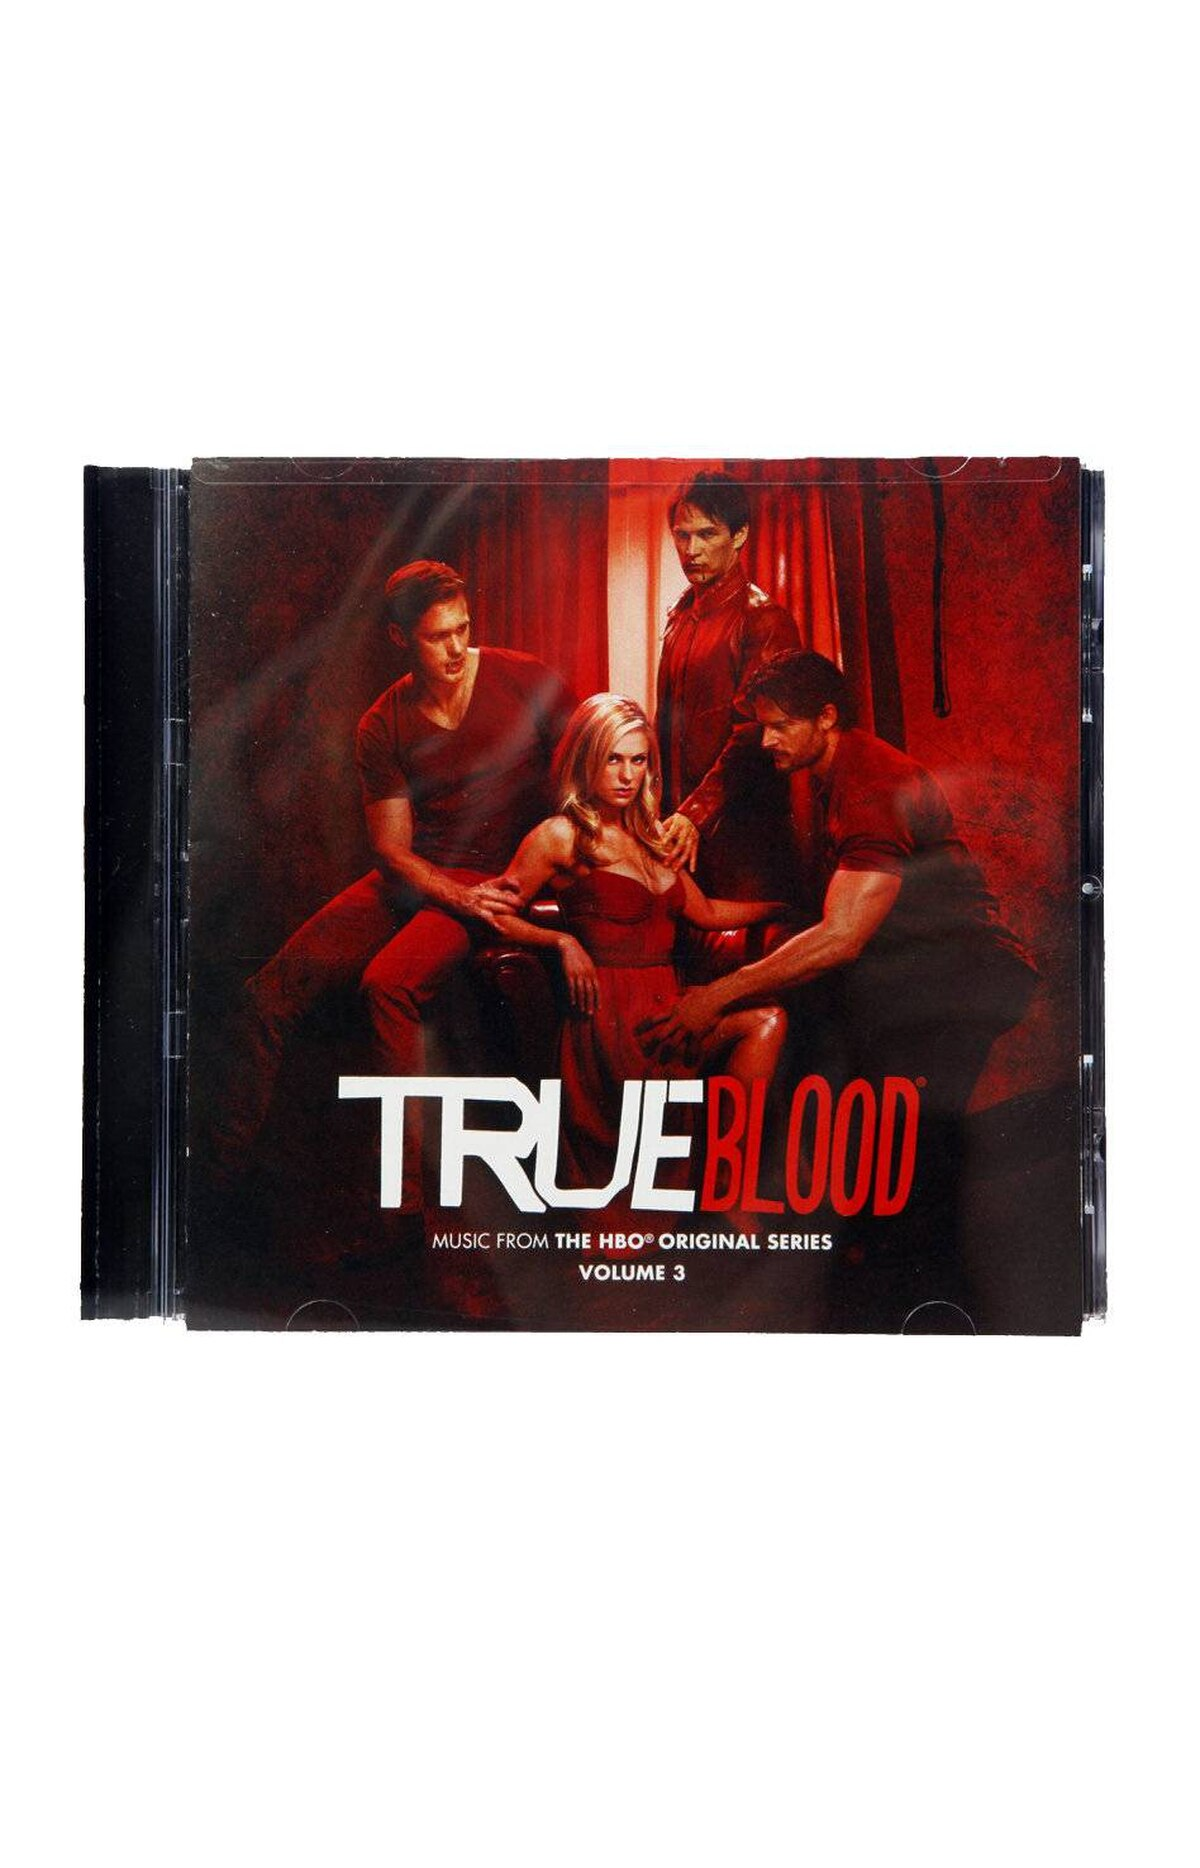 True Blood: Music from the HBO Original series, Vol. 3 True Blood isn't only about cool vampires and sexy shenanigans. The music is particularly well-chosen. This soundtrack collection has some absolute gems, including a rarely heard version of 9 Crimes by Damien Rice and the surreal, throbbing cover of the Zombies's She's Not There by Neko Case and Nick Cave ($15.95 at amazon.ca)